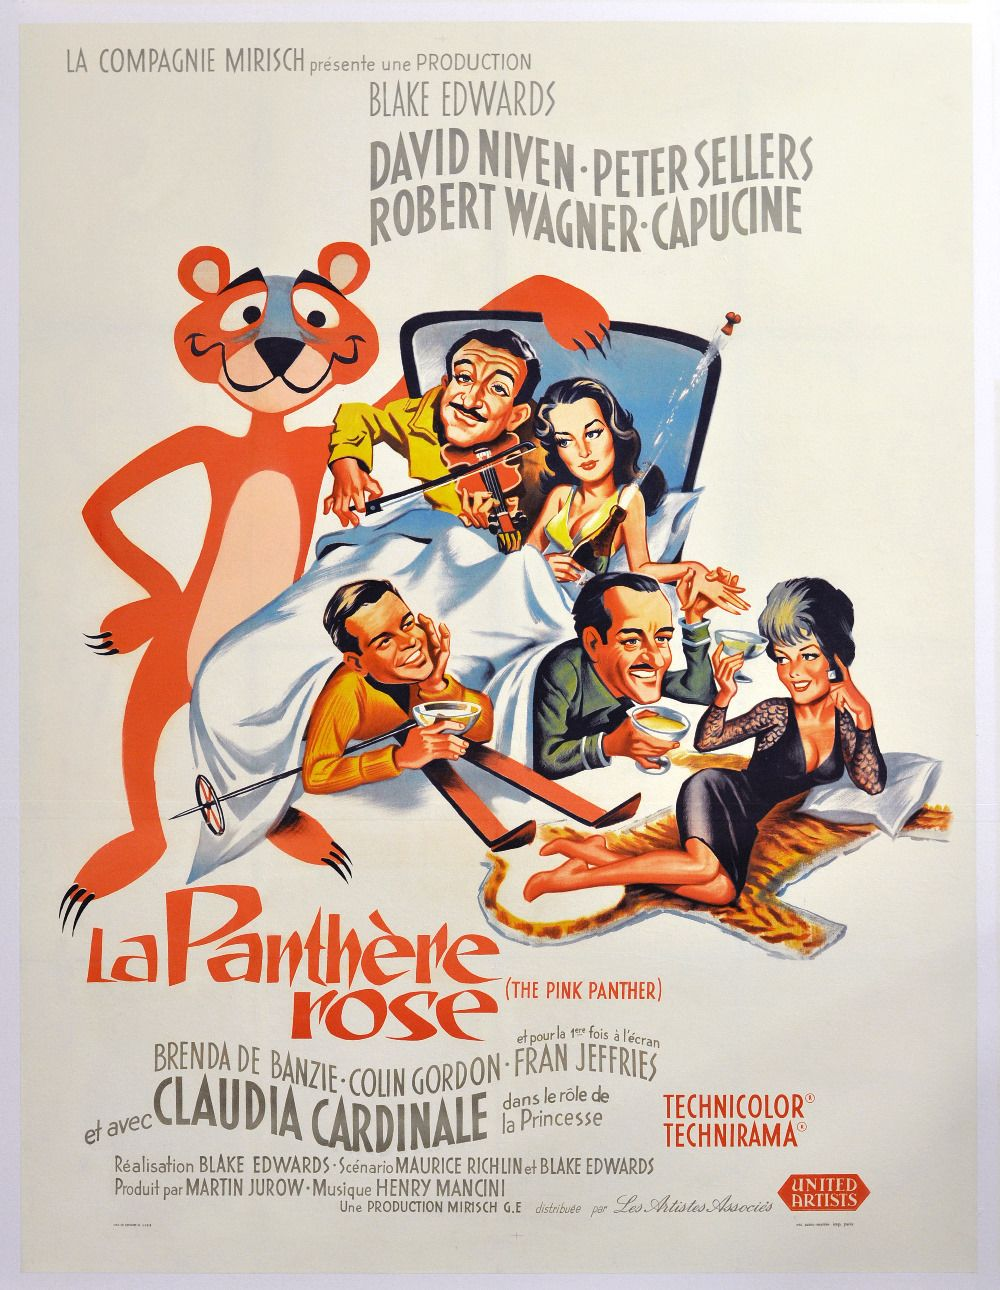 Affiches posters et images de la panth re rose 1963 - Image panthere rose ...